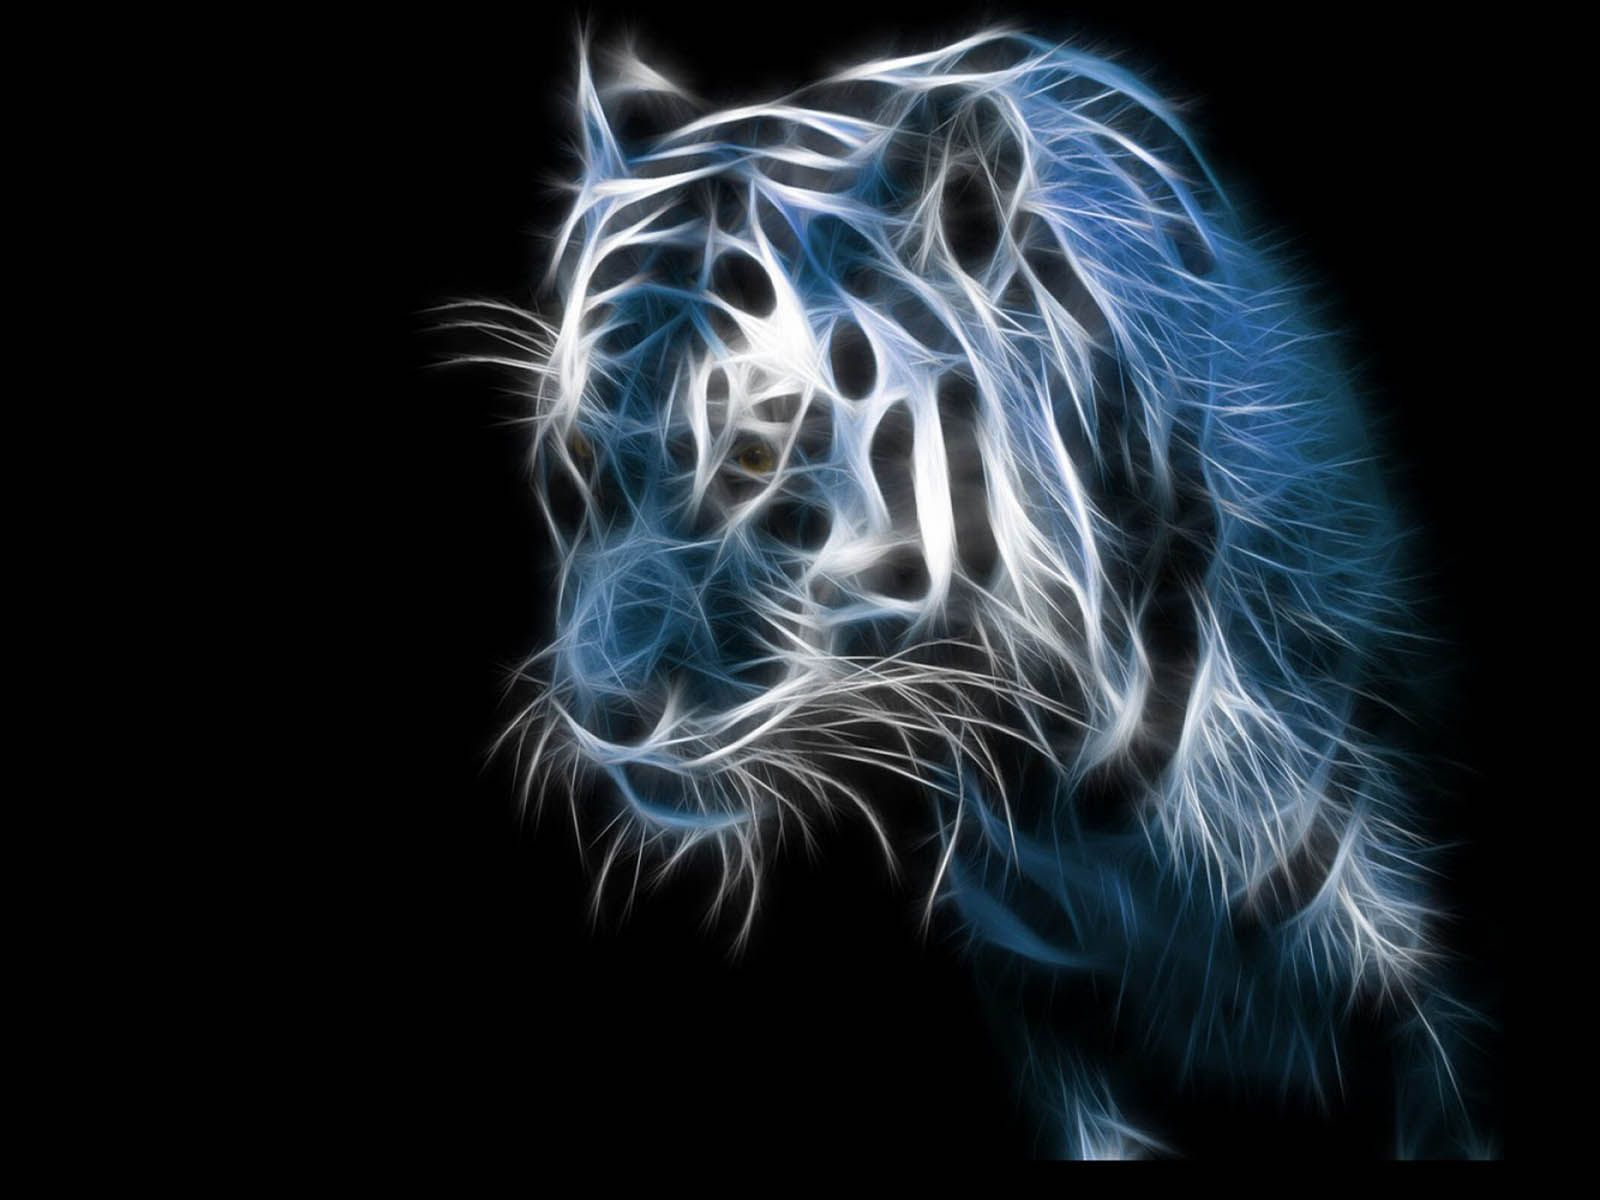 Wallpapers Cool Desktop Backgrounds Hd Wallpapers For Laptop Animal Wallpaper